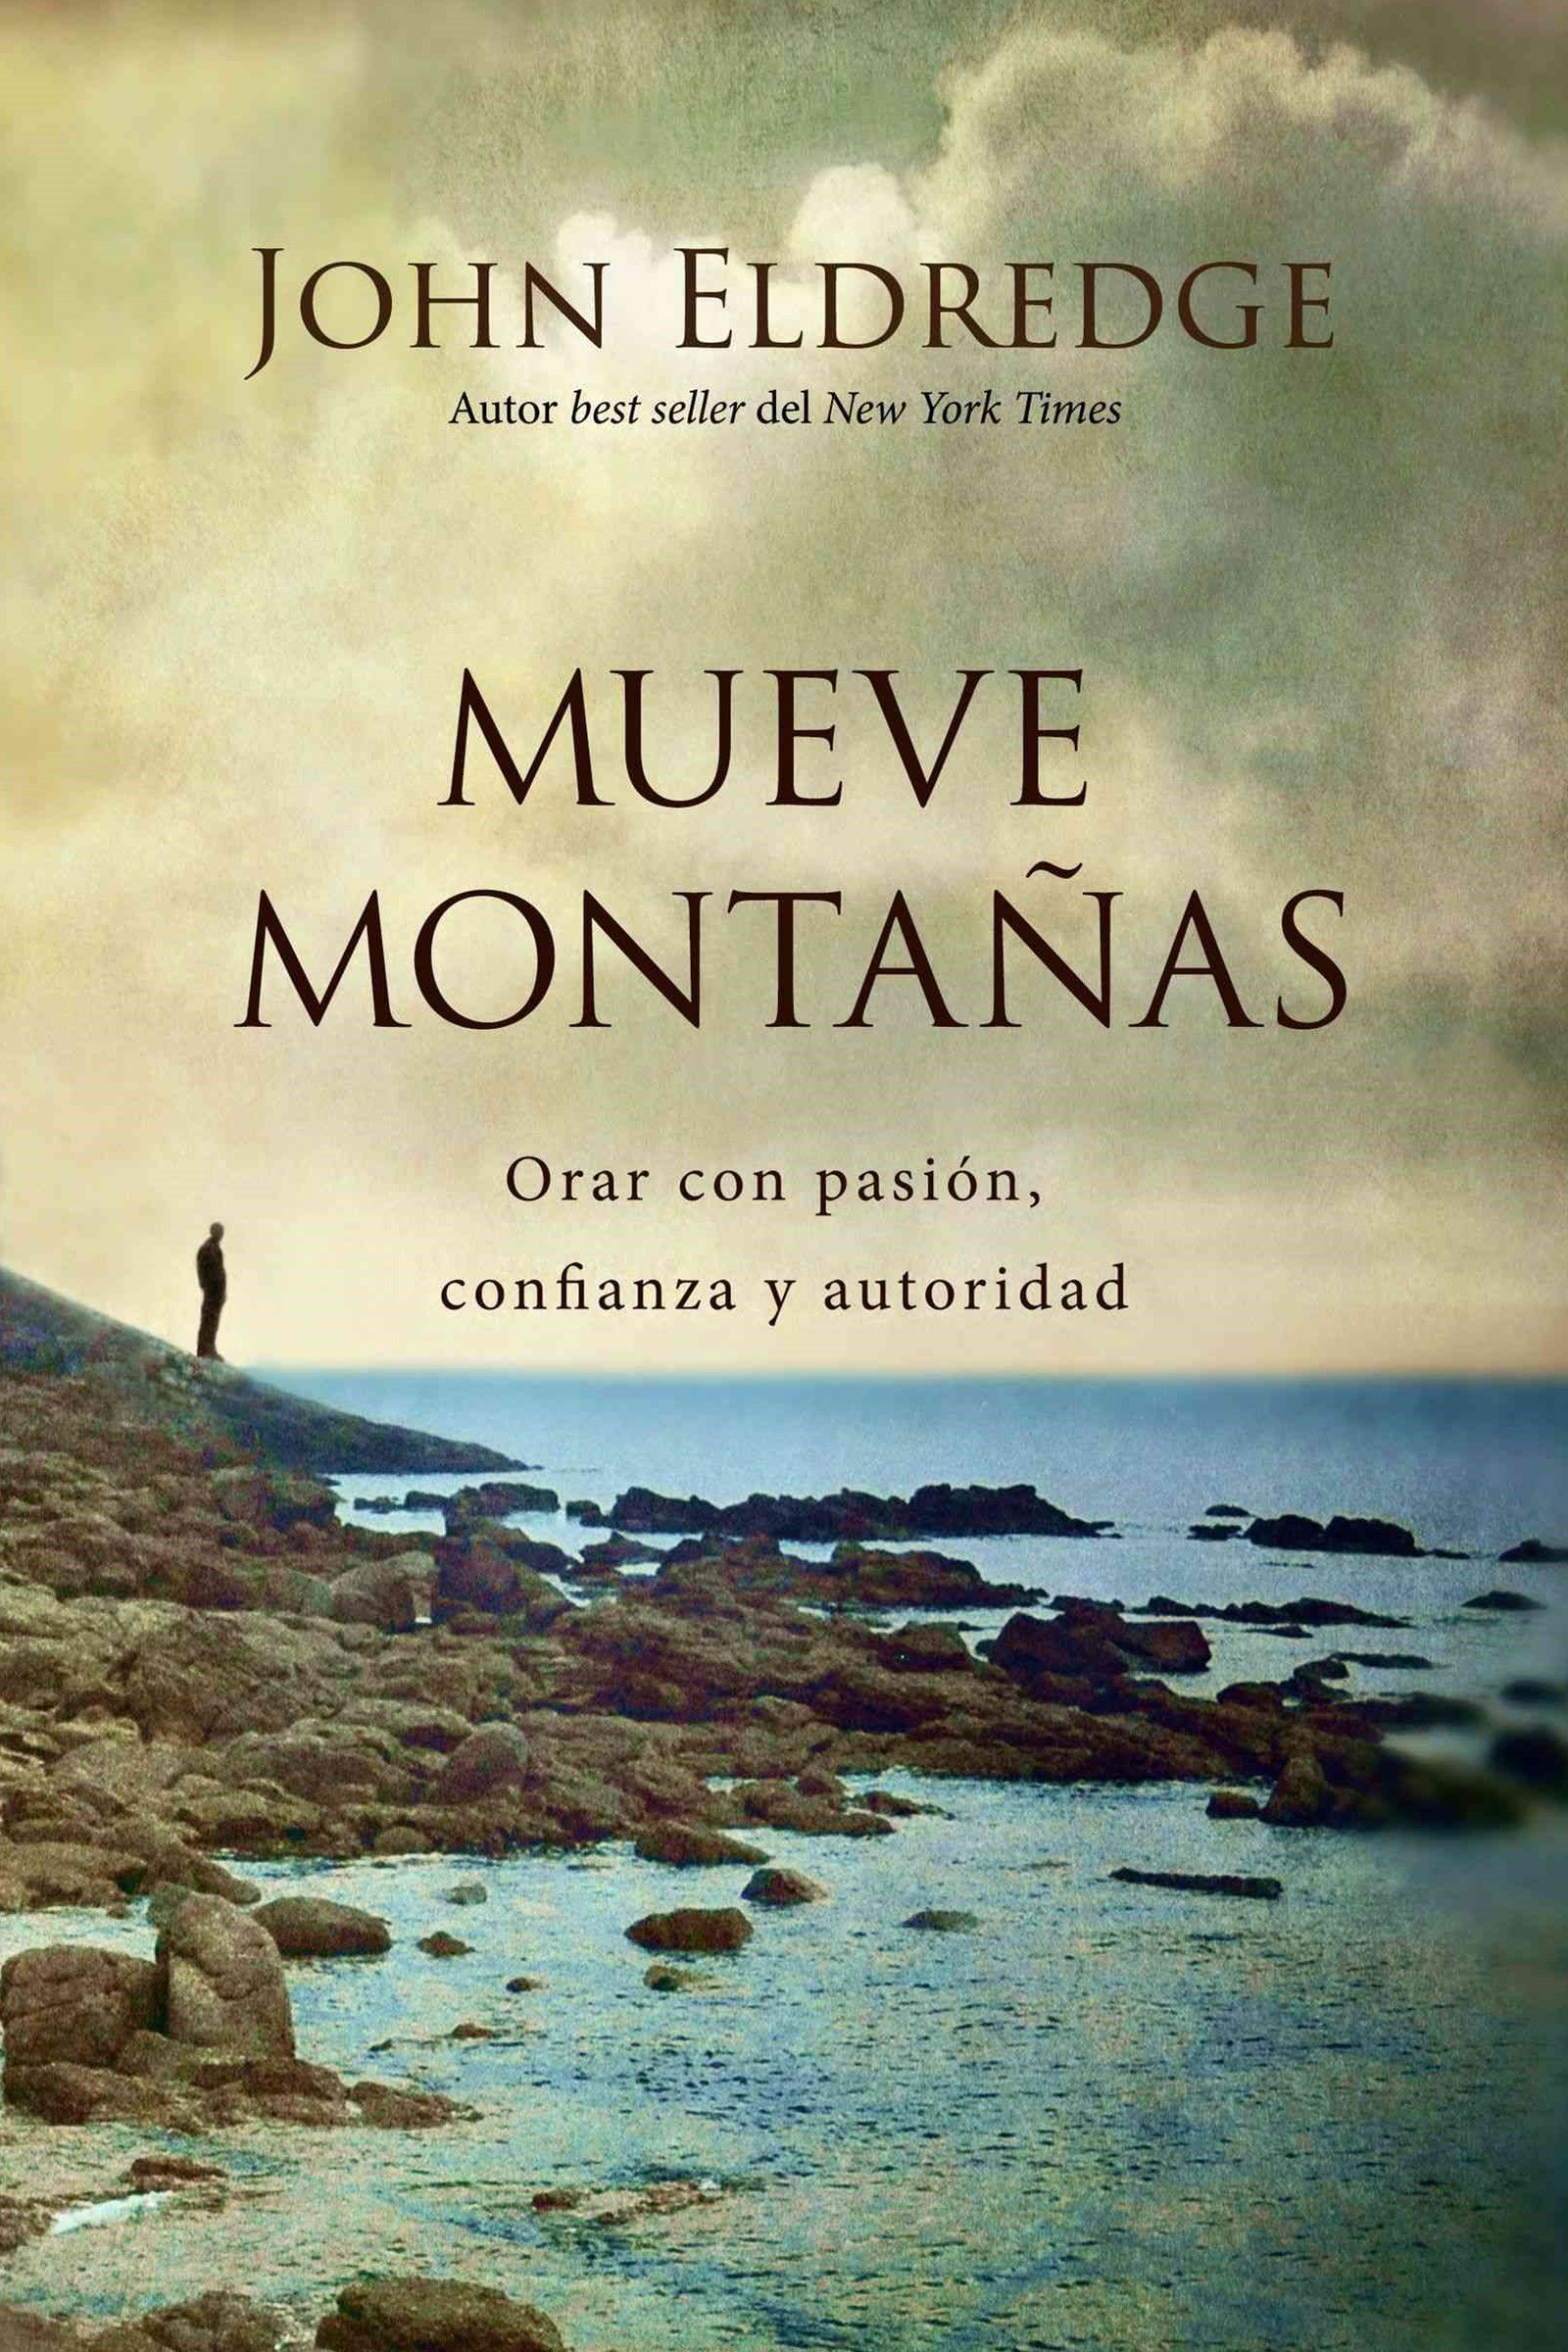 Mueve montanas: Praying with Passion, Confidence, and Authority